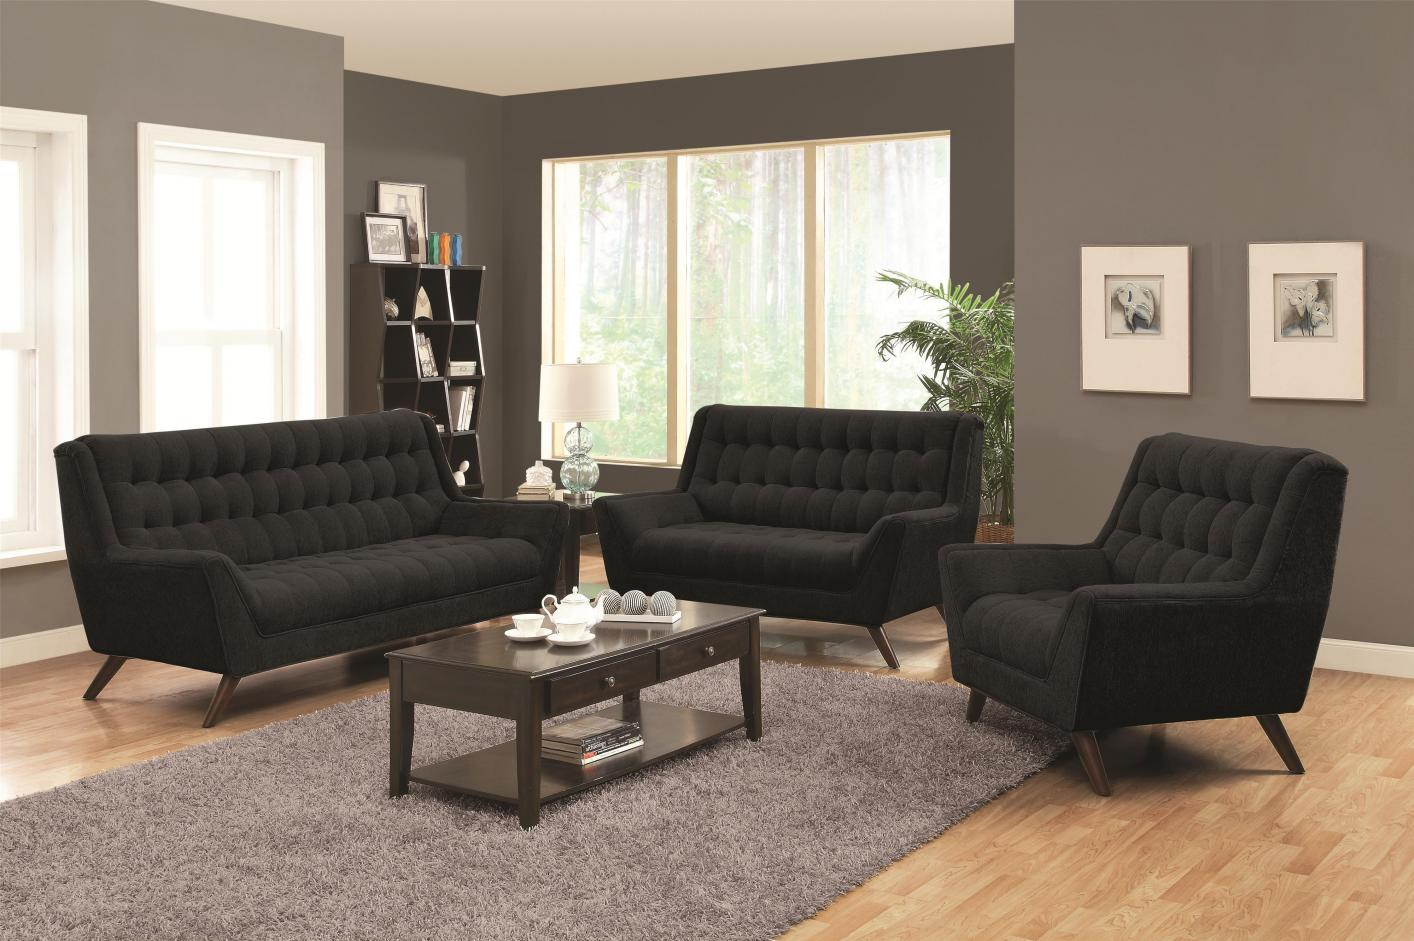 Natalia Black Fabric Sofa Natalia Black Fabric Sofa  Natalia Black Fabric Sofa   Steal A Sofa Furniture Outlet Los  . Fabric Living Room Sets. Home Design Ideas